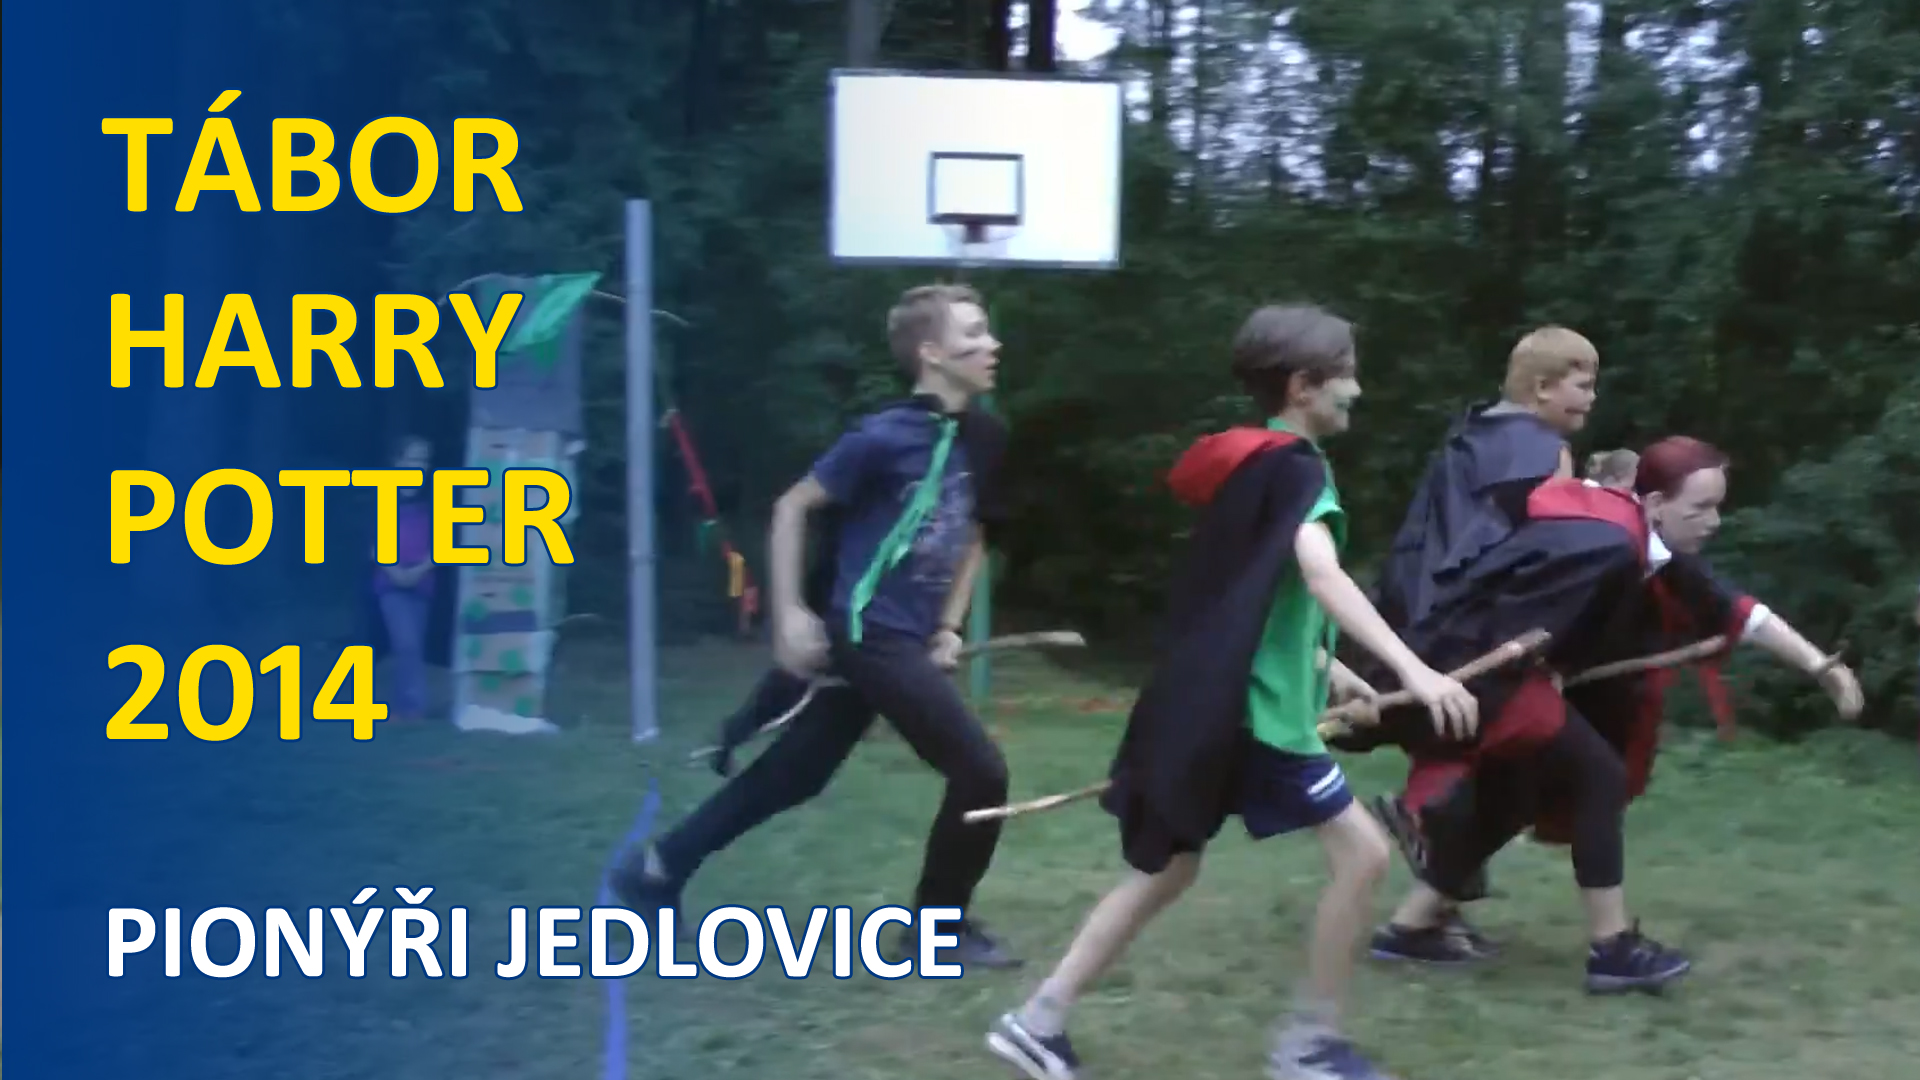 Tábor Harry Potter 2014 - Pionýři Jedlovice